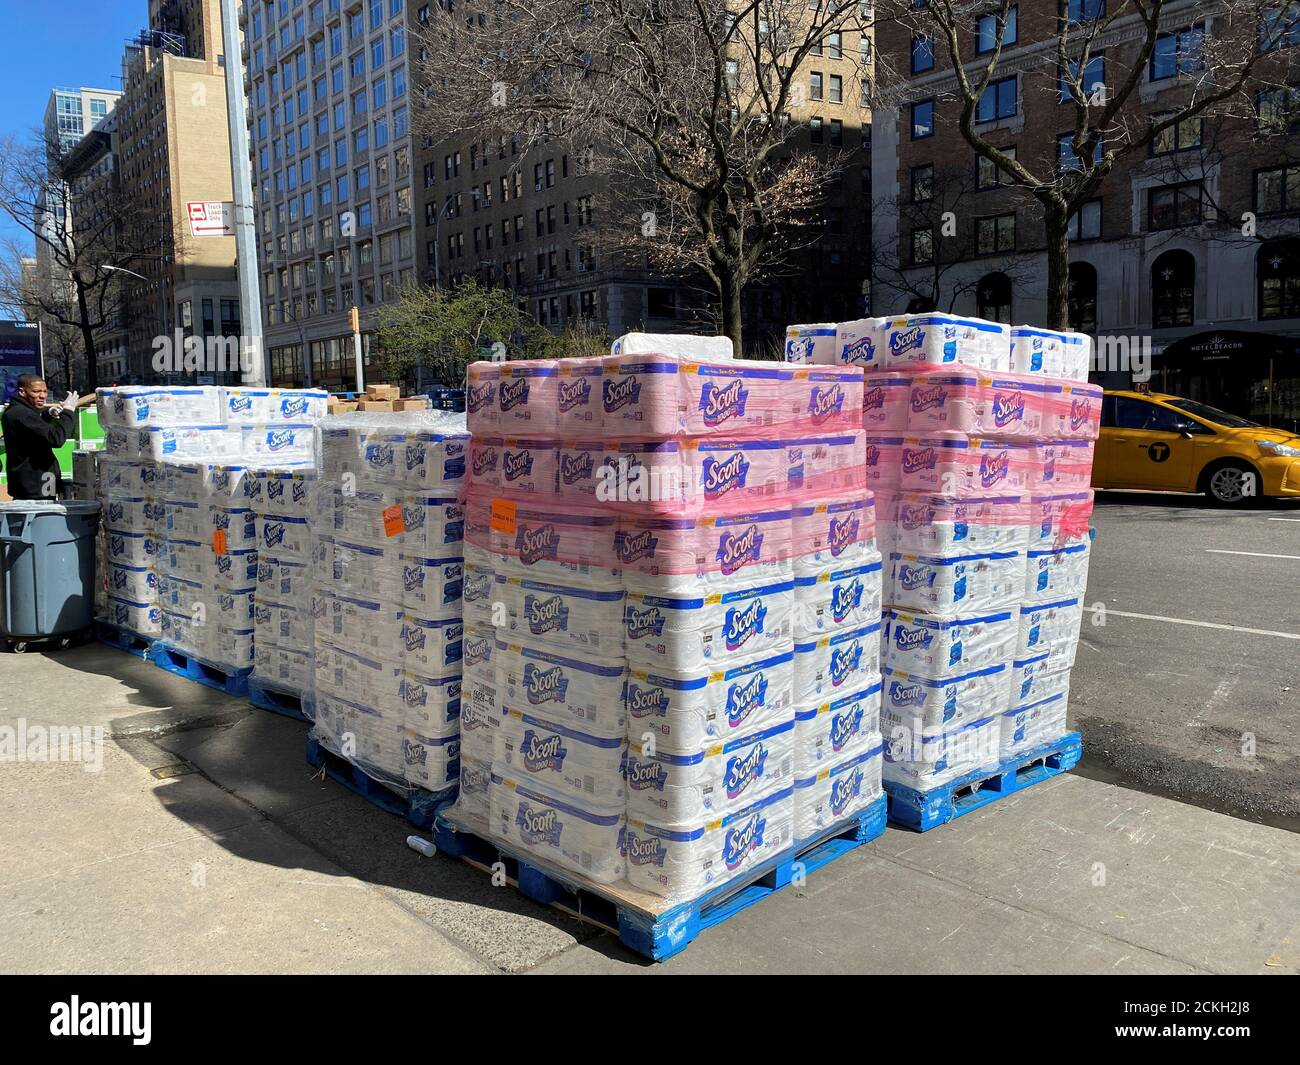 Pallets of toilet paper fill the sidewalk in front of grocer Fairway  in Manhattan on Sunday after panicky shoppers depleted shelves, amid fears of the global growth of coronavirus cases, in Manhattan, New York, U.S. March 15, 2020. REUTERS/Anna Driver Stock Photo